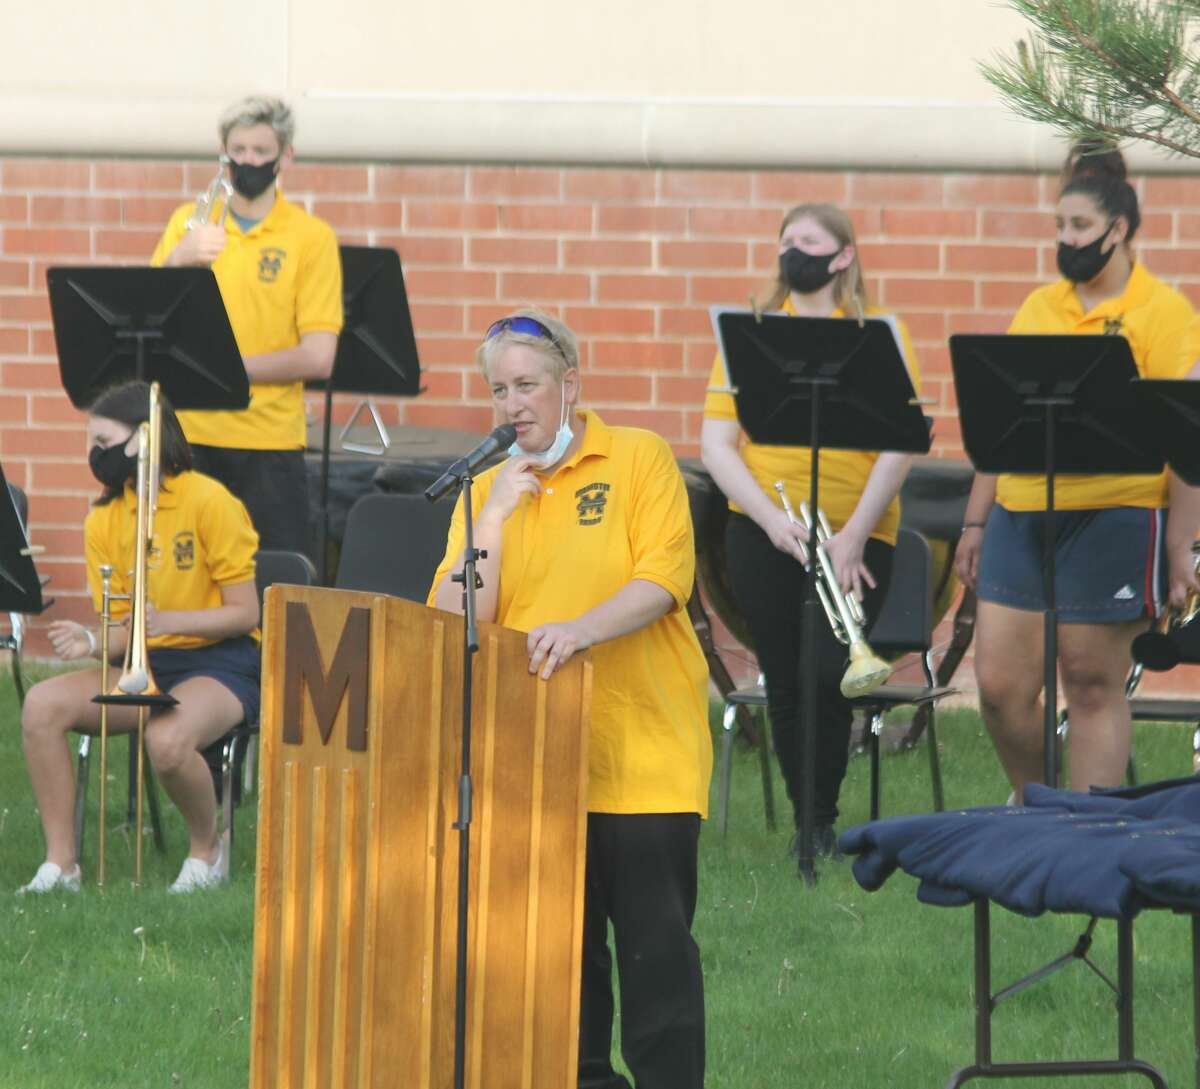 Andrea Mack, Manistee Area Public Schools director of bands, was presented with the 2020 Michigan School B and Orchestra Association Teacher of the Year during an outdoor concert at the Manistee Middle High School building Monday evening.